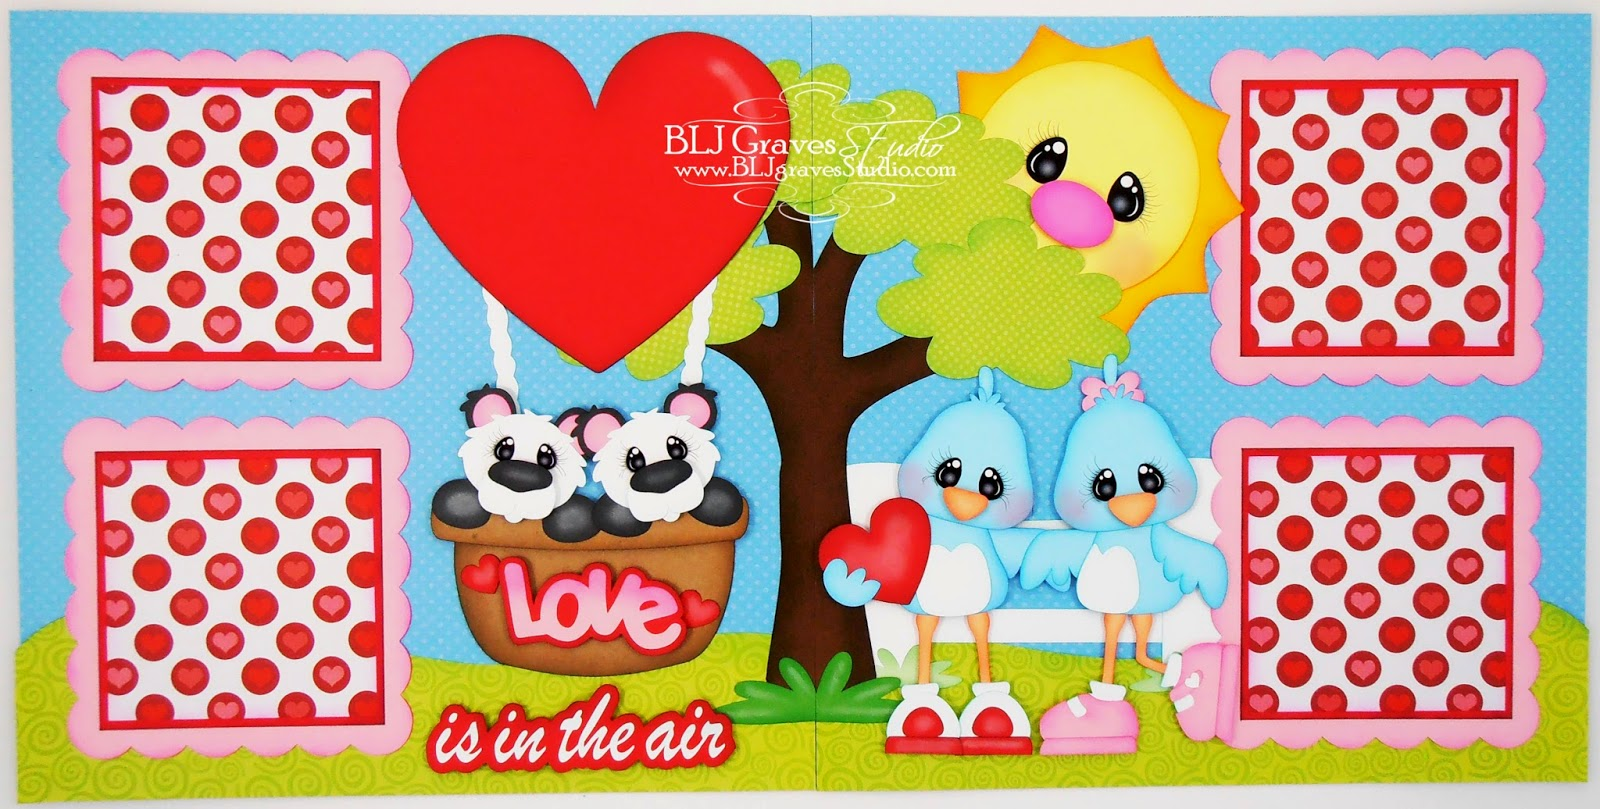 How to design scrapbook layouts - Today I Have A Valentine Layout To Share With You I Used The Following Files For This Layout Love Hot Air Balloon